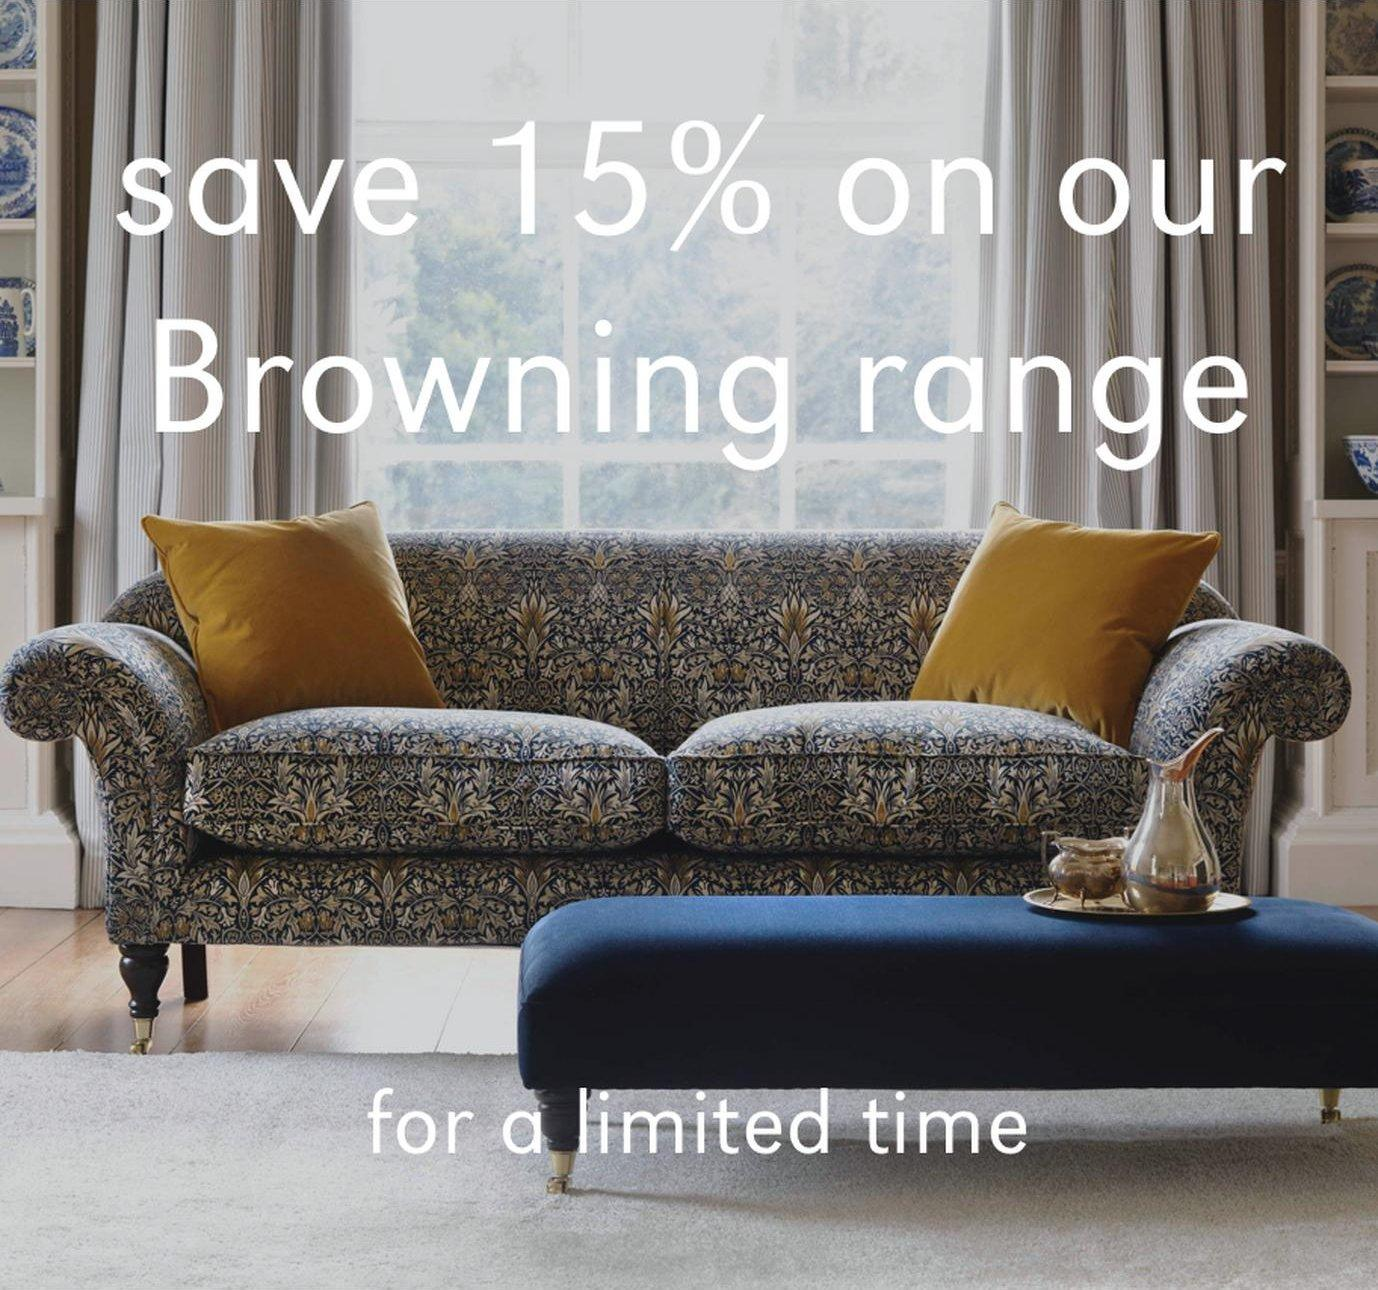 Browning sofas 15% off